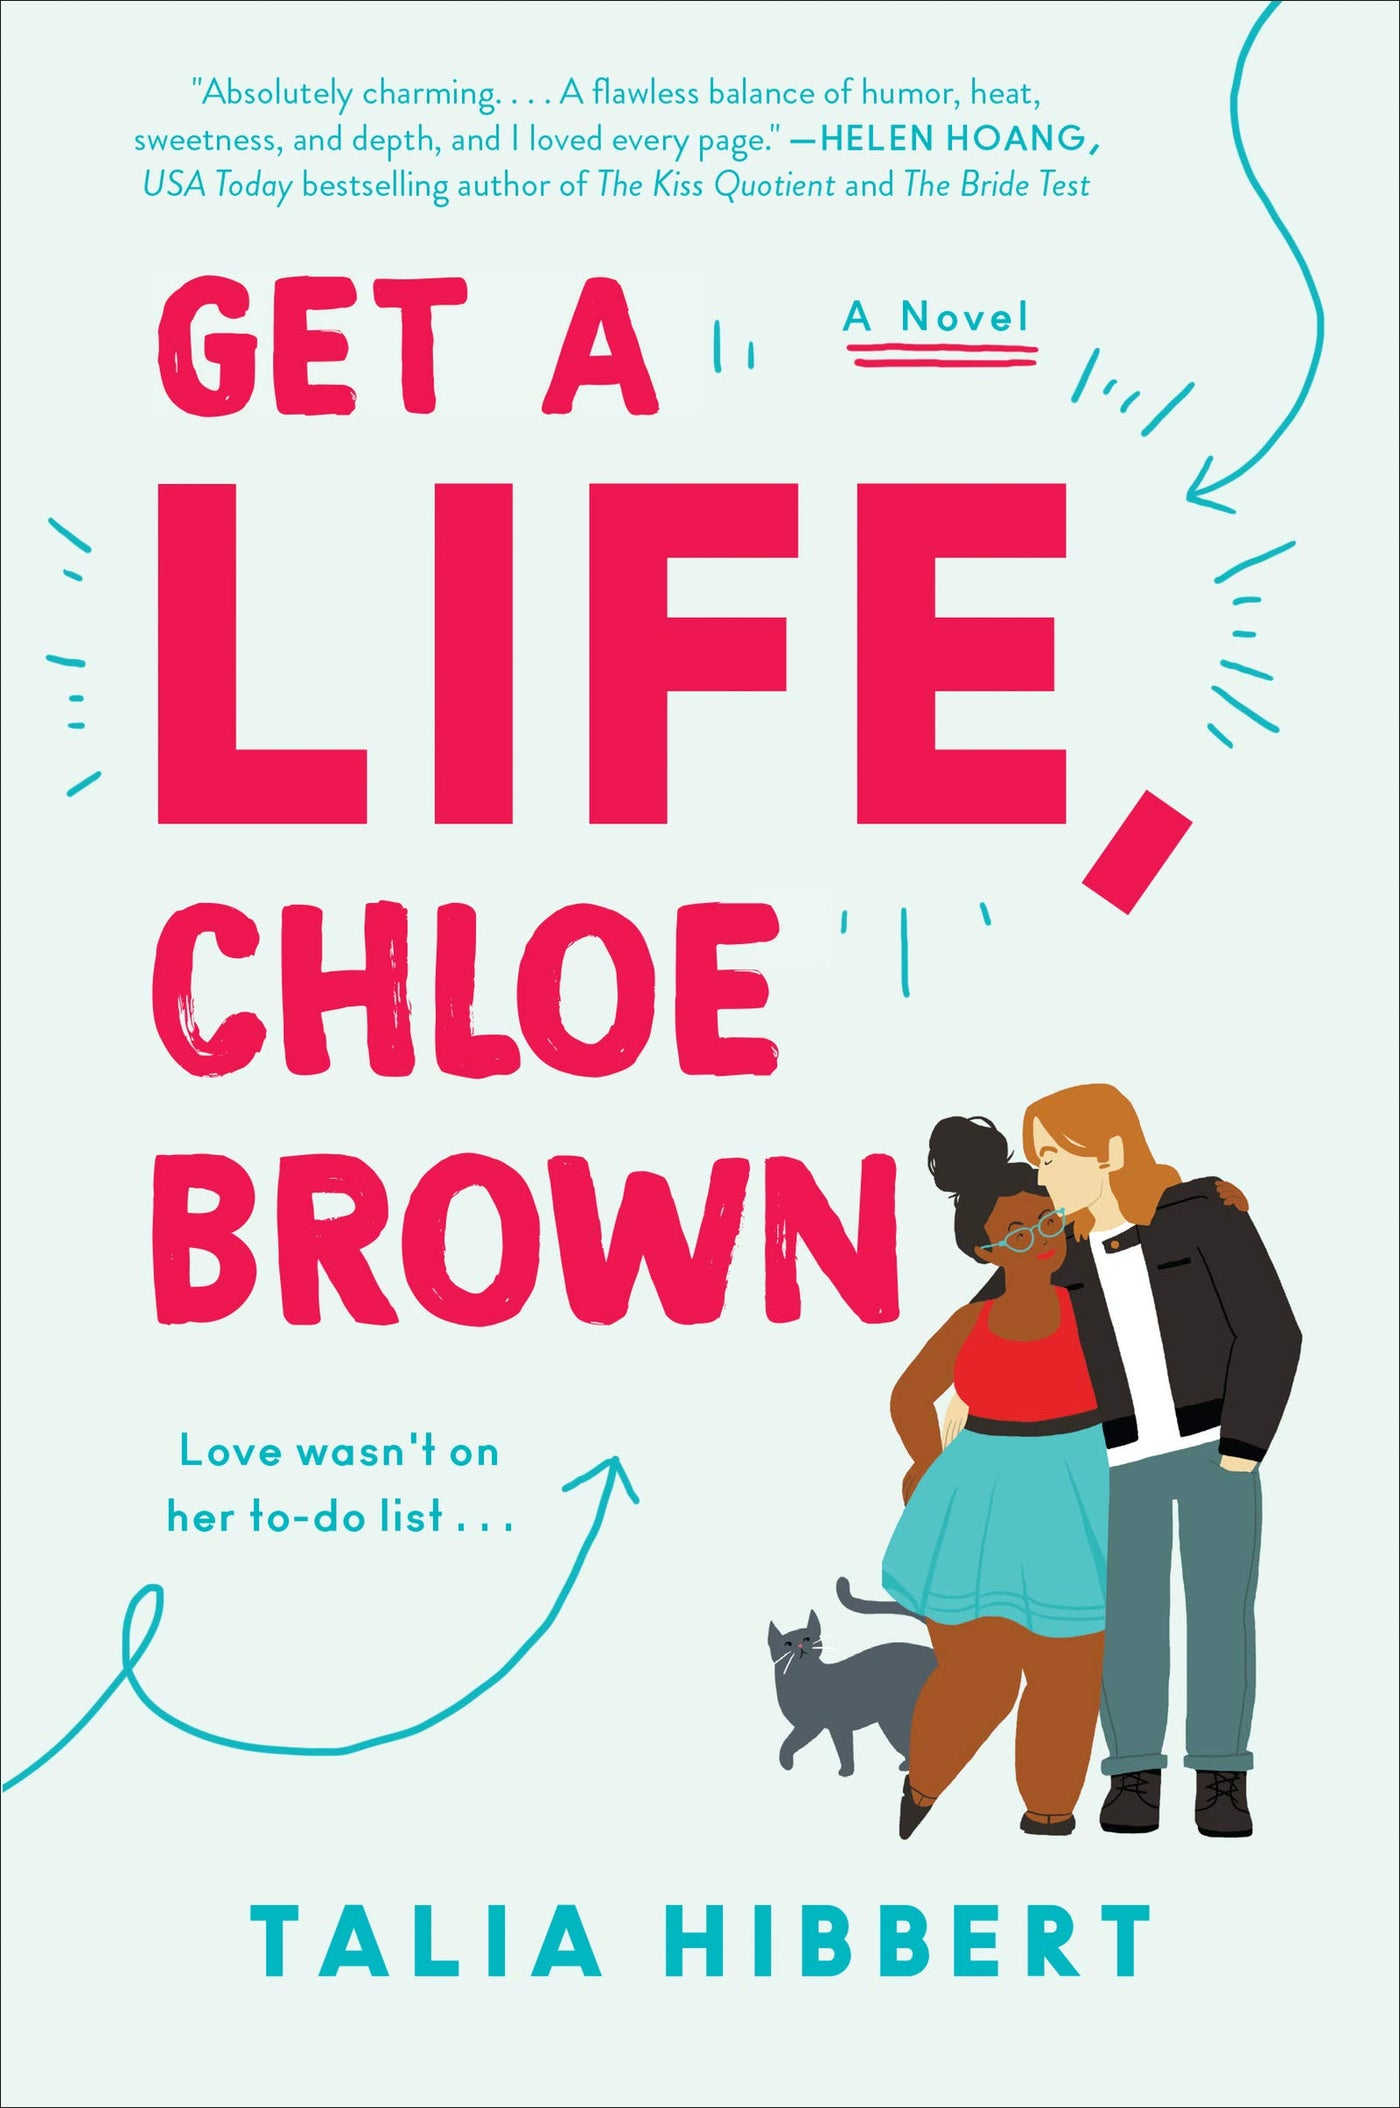 Get a Life, Chloe Brown: A Novel by Talia Hibbert